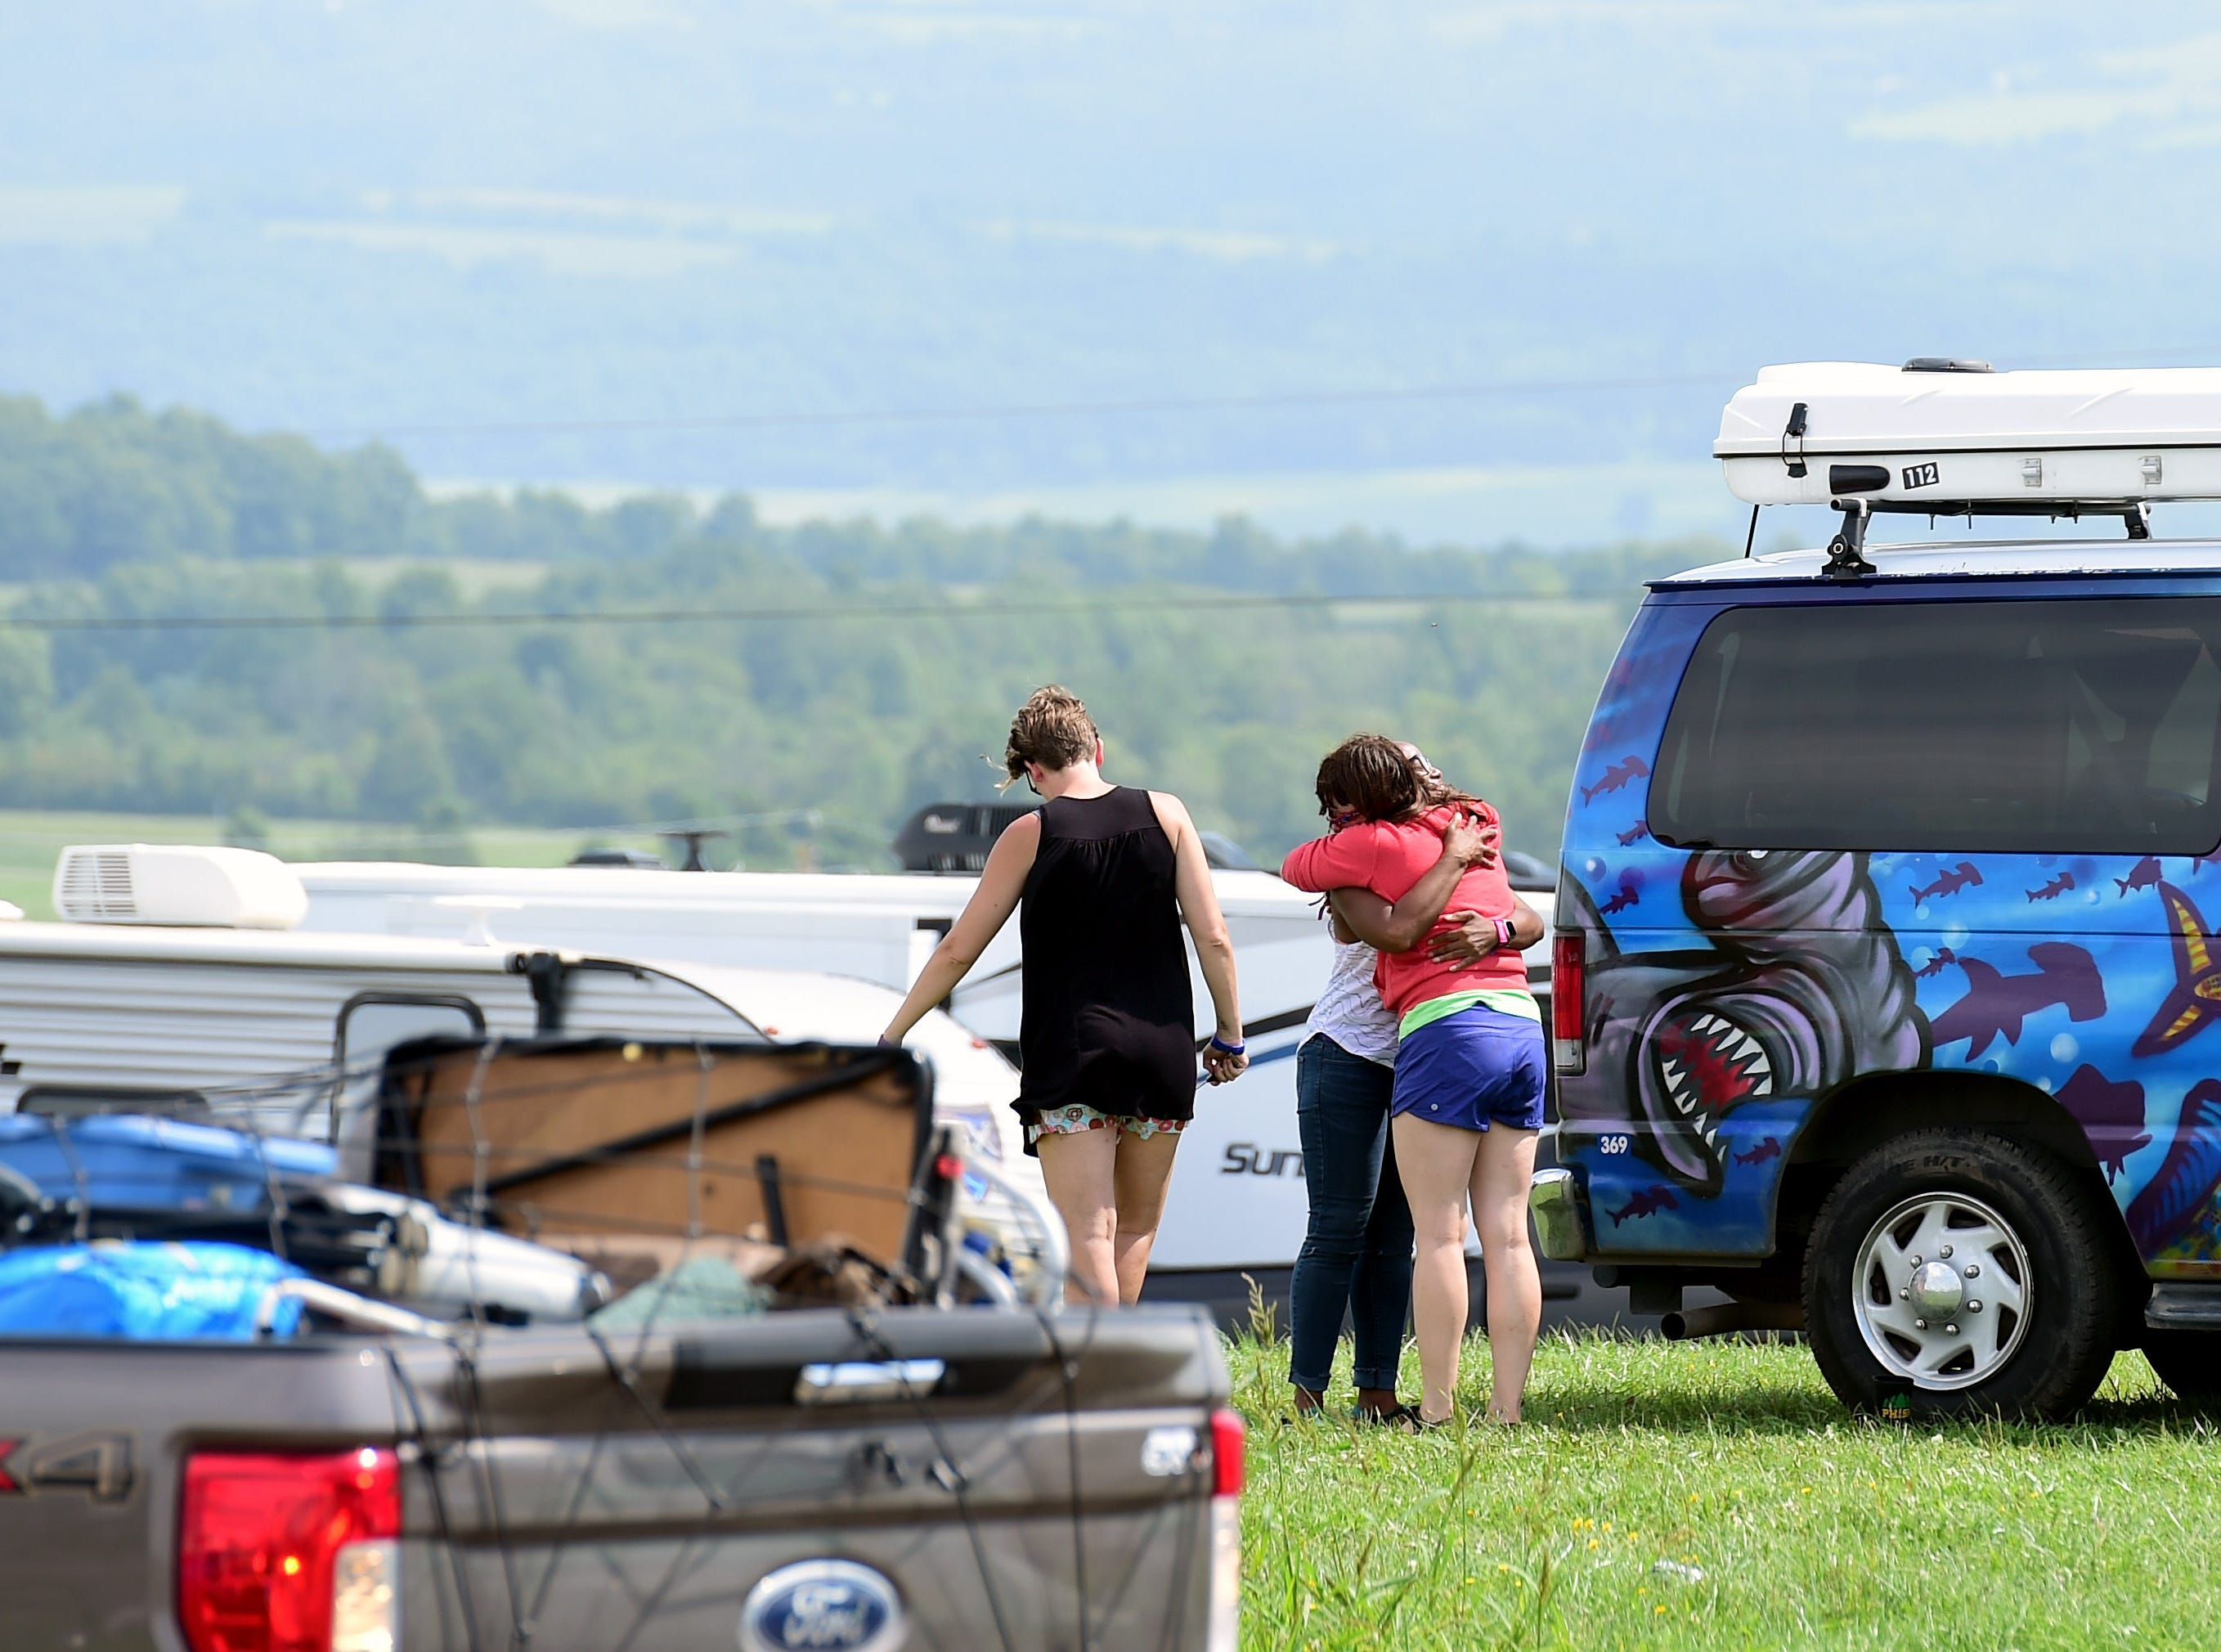 Phish fans from Chicago, Texas and Washington, D.C., prepare to leave Watkins Glen International on Friday, August 17, 2018. The three-day Curveball Festival was cancelled on Thursday night due to water quality issues on the site.